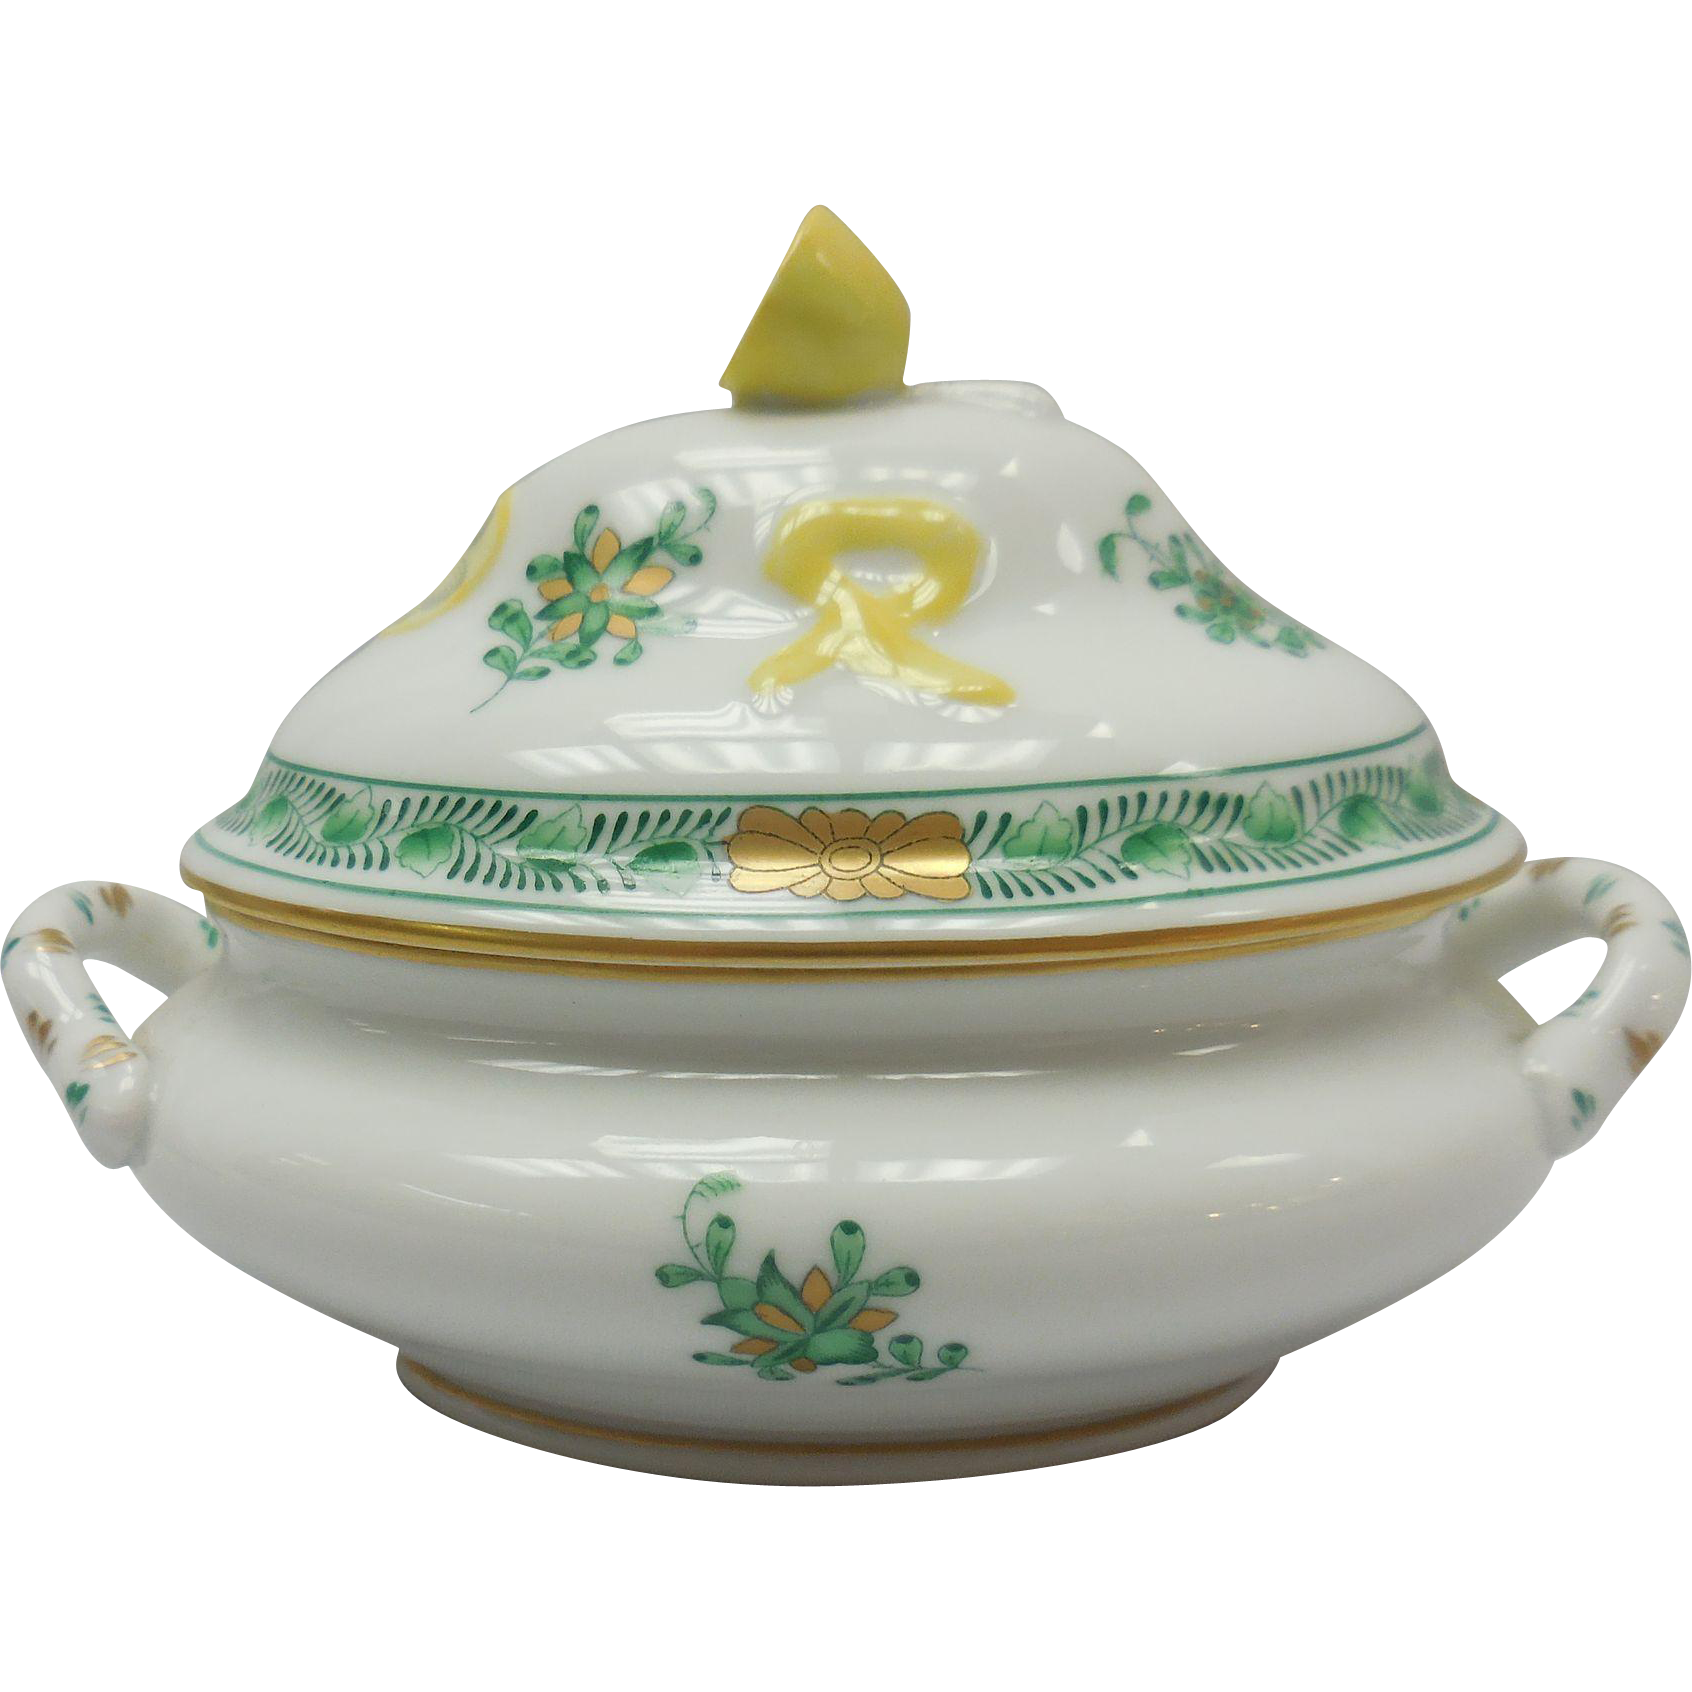 Hungarian Herend Porcelain Lemon Motif Covered Dish